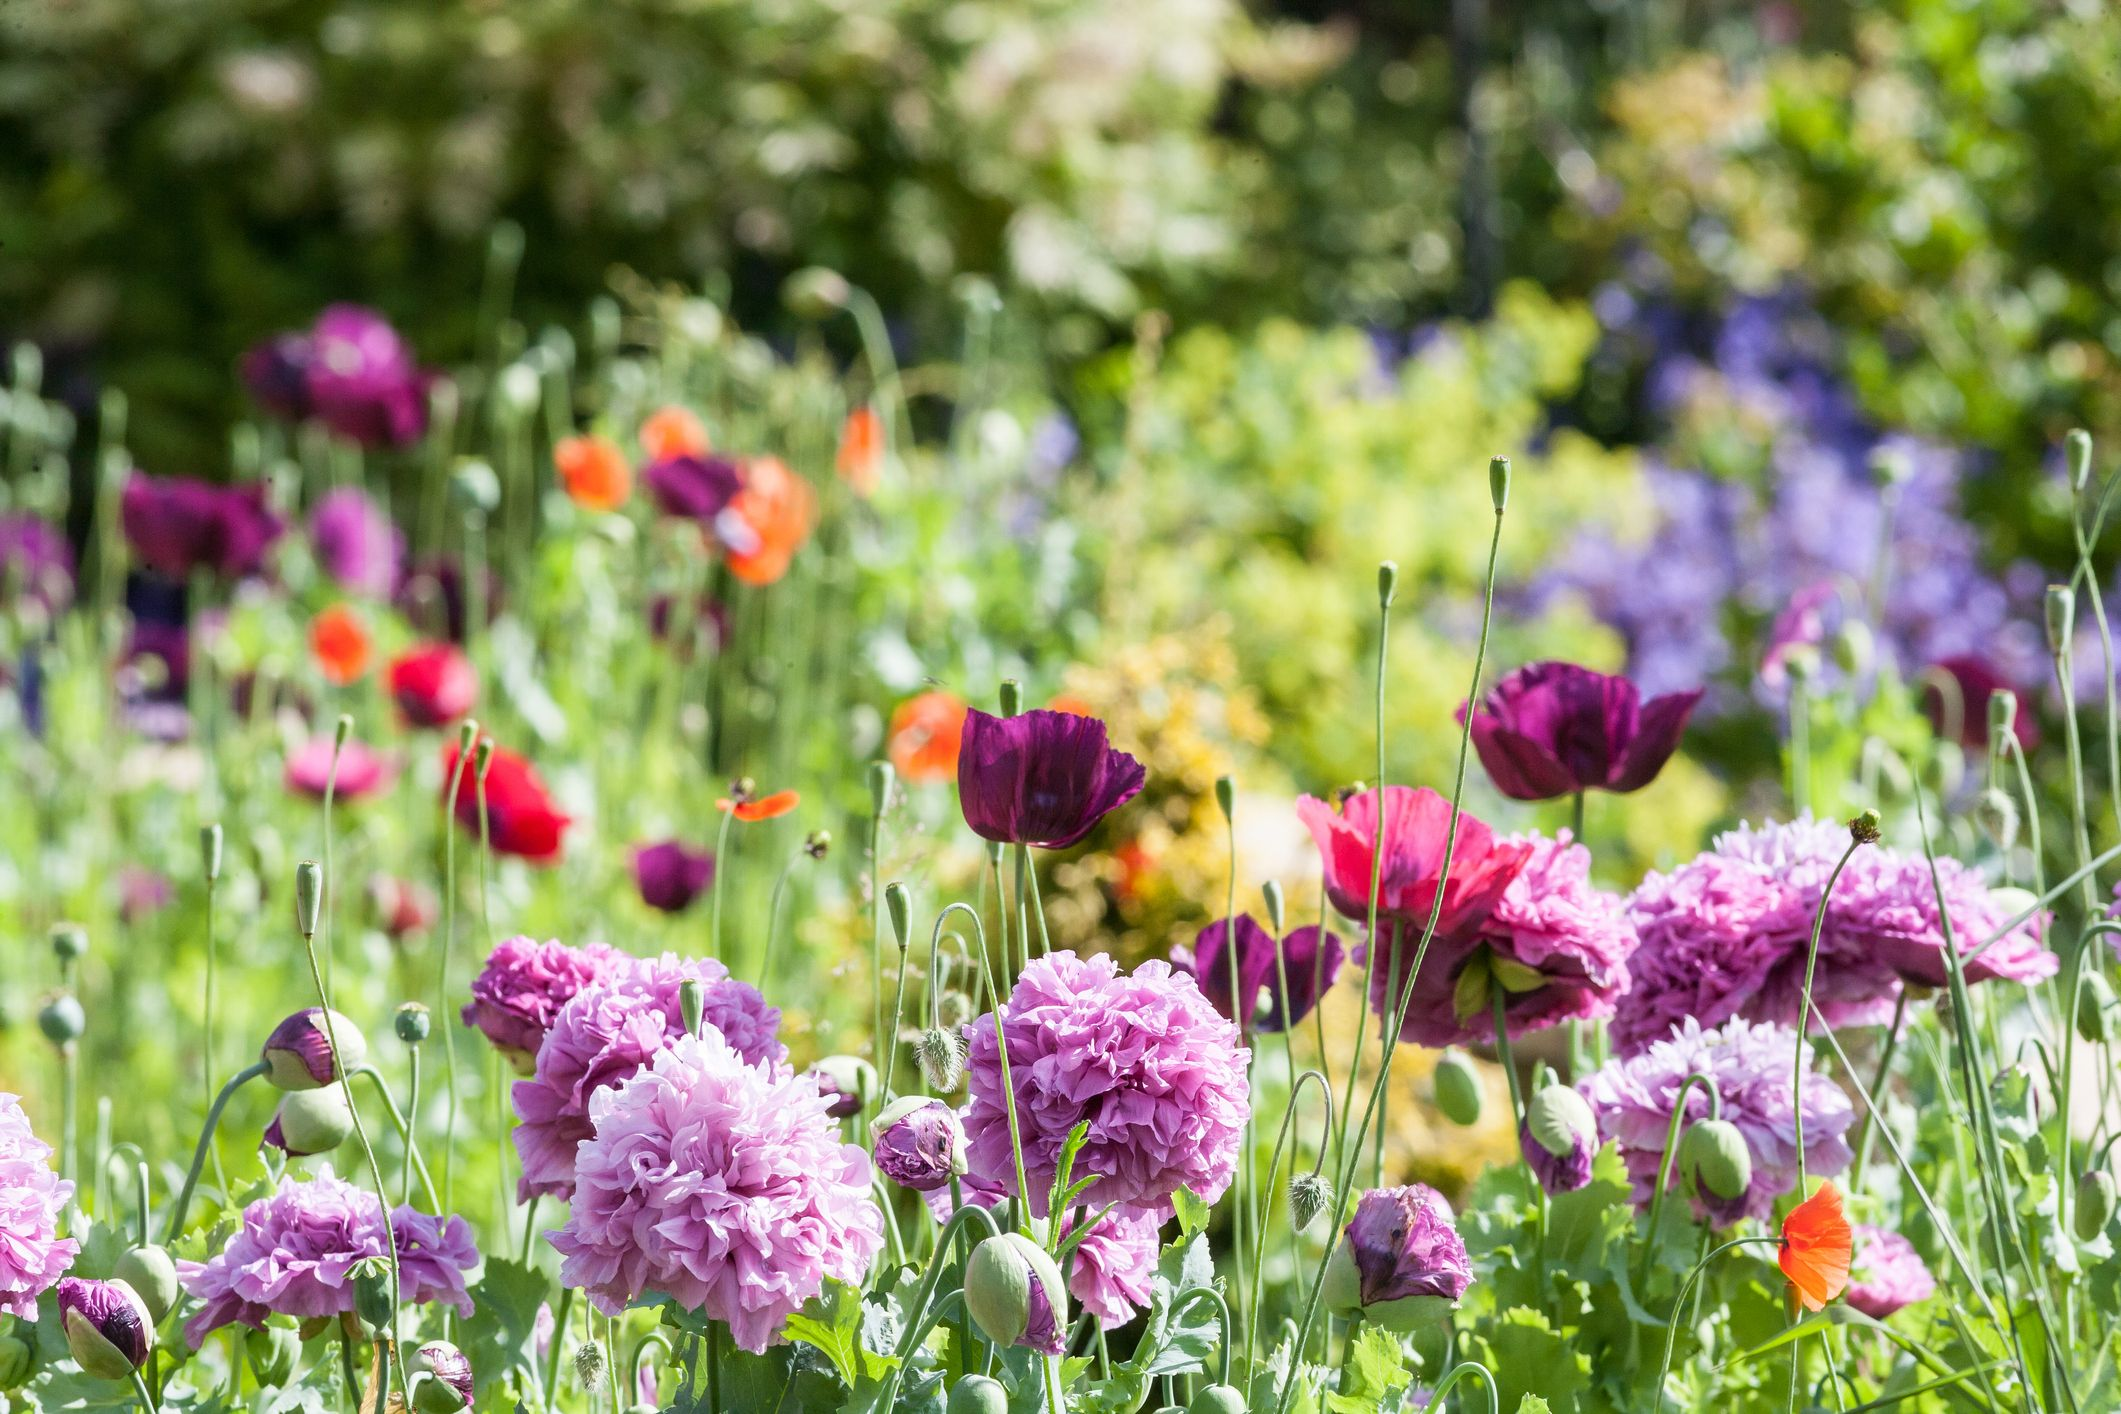 55 Best Types of Flowers \u2013 Pretty Pictures of Garden Flowers